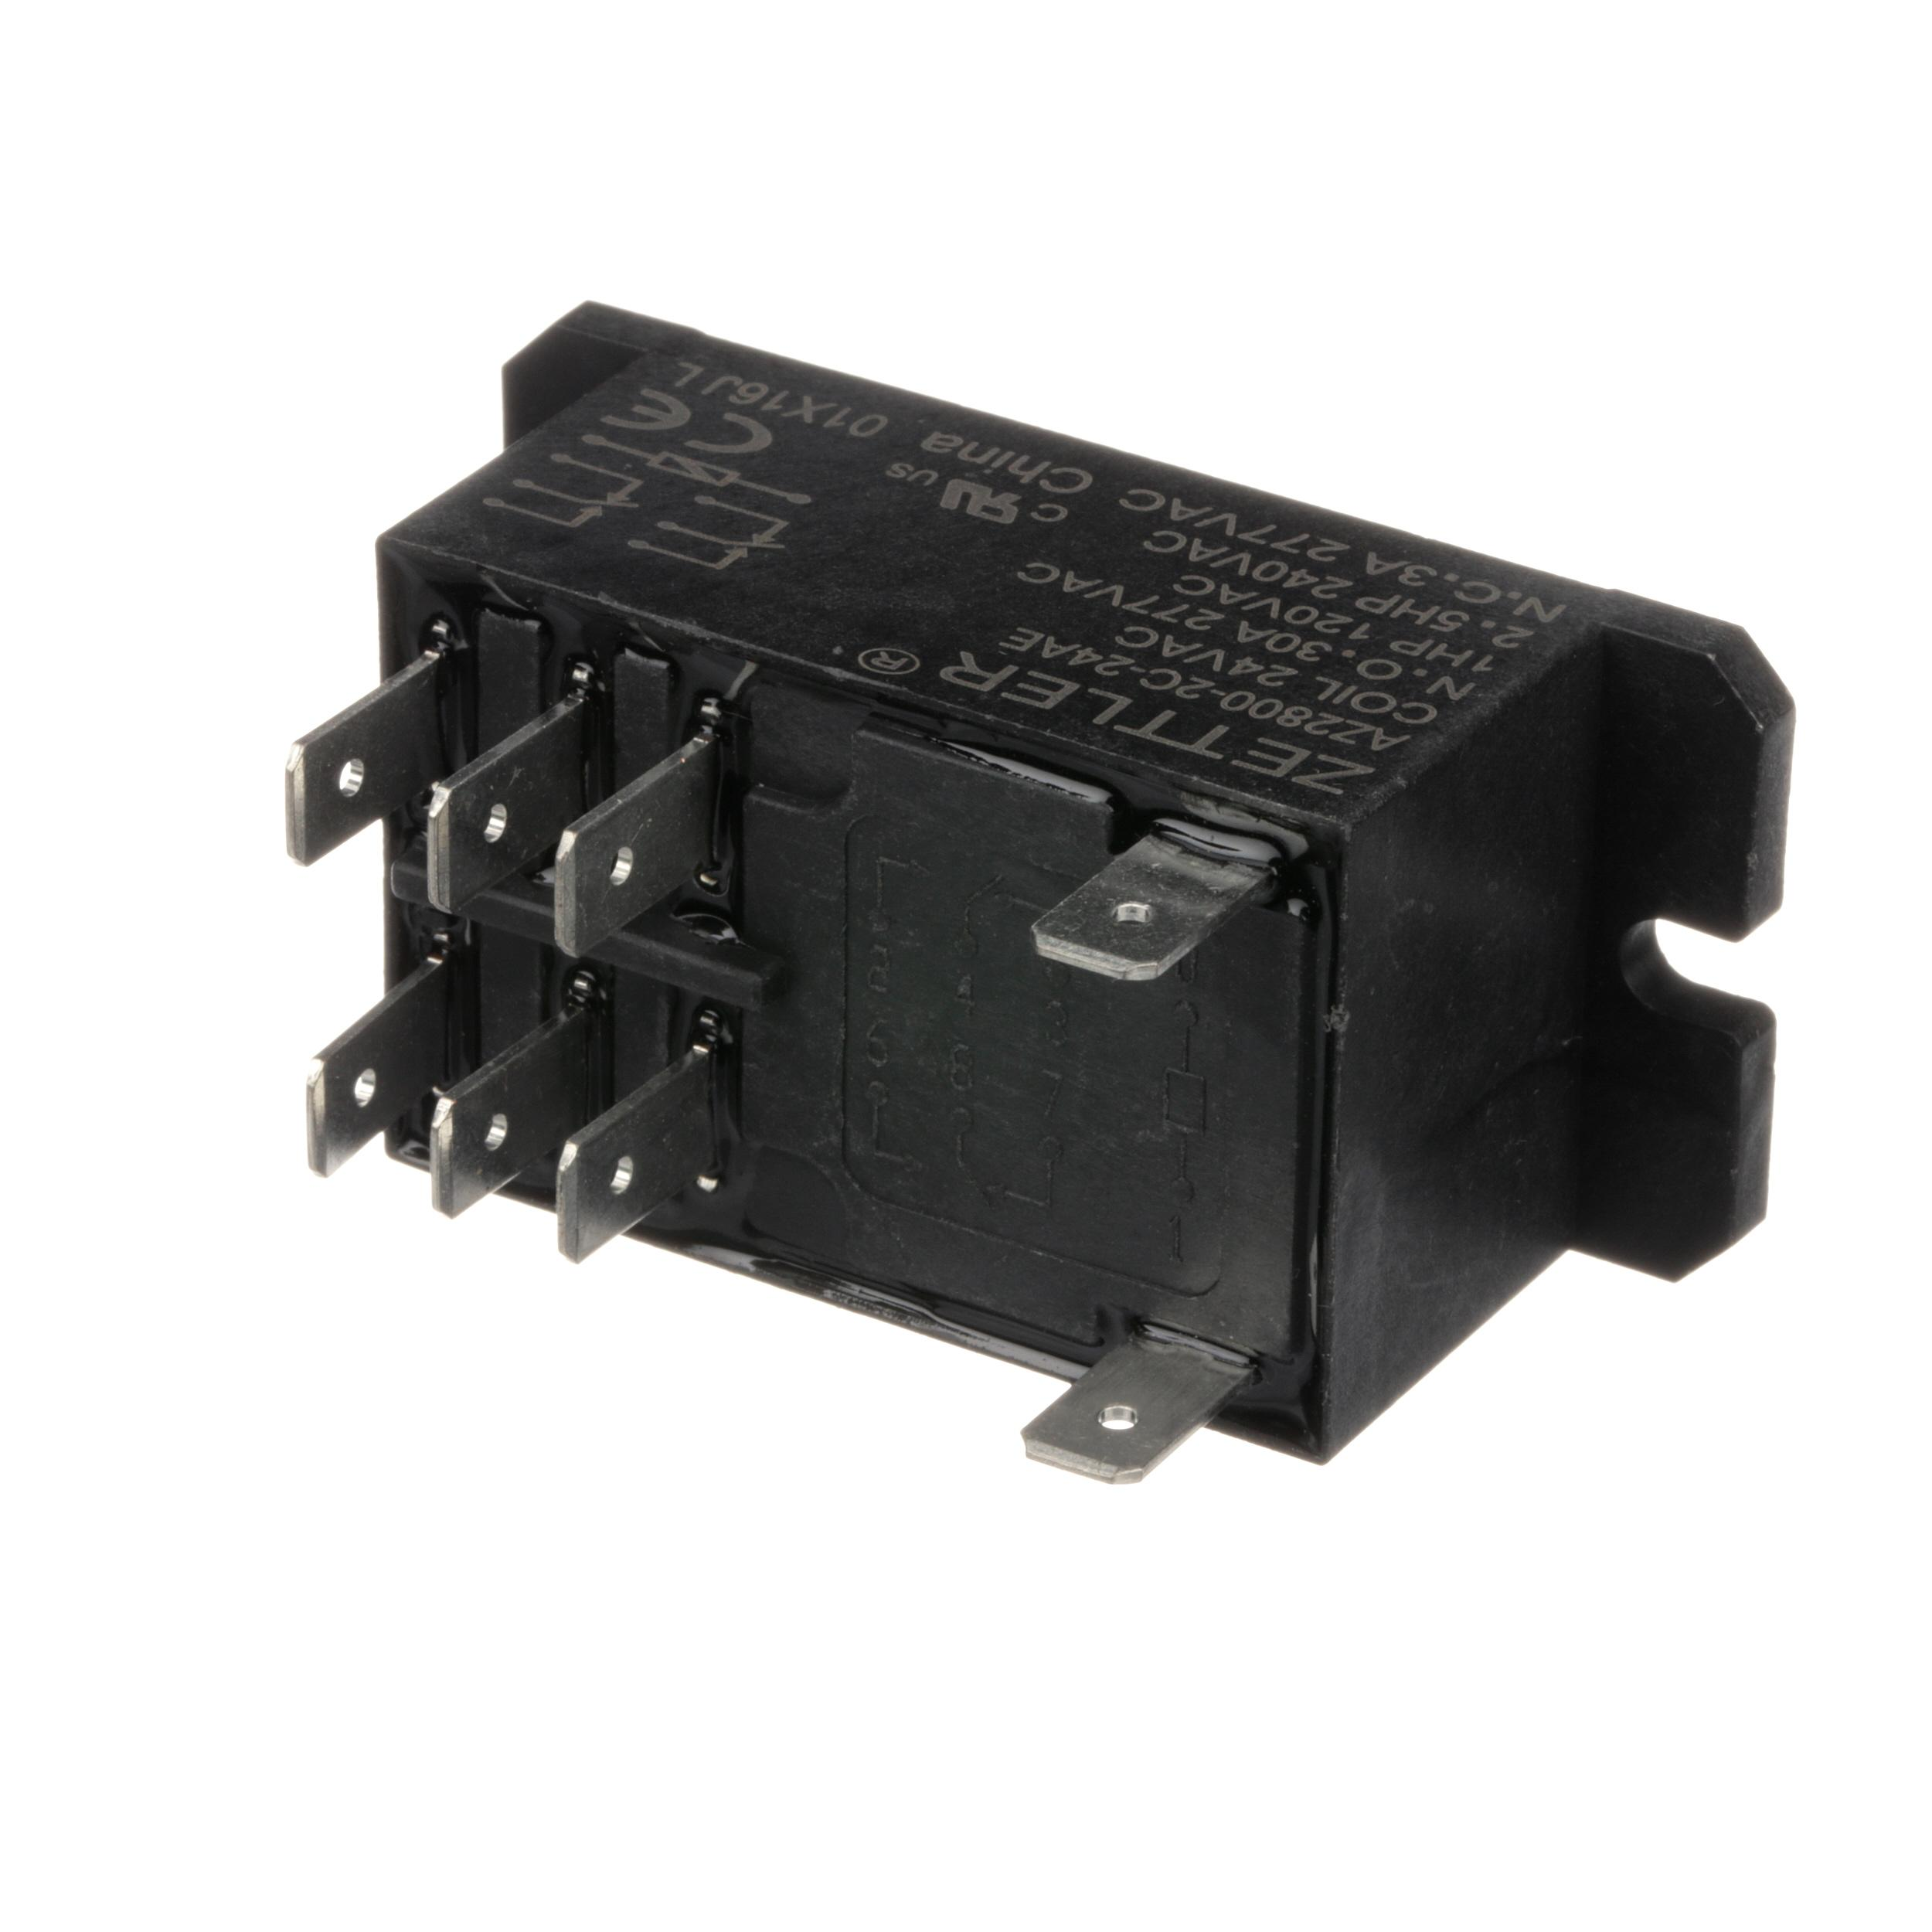 LANG RELAY-2POLE,30A@24VAC,MTR